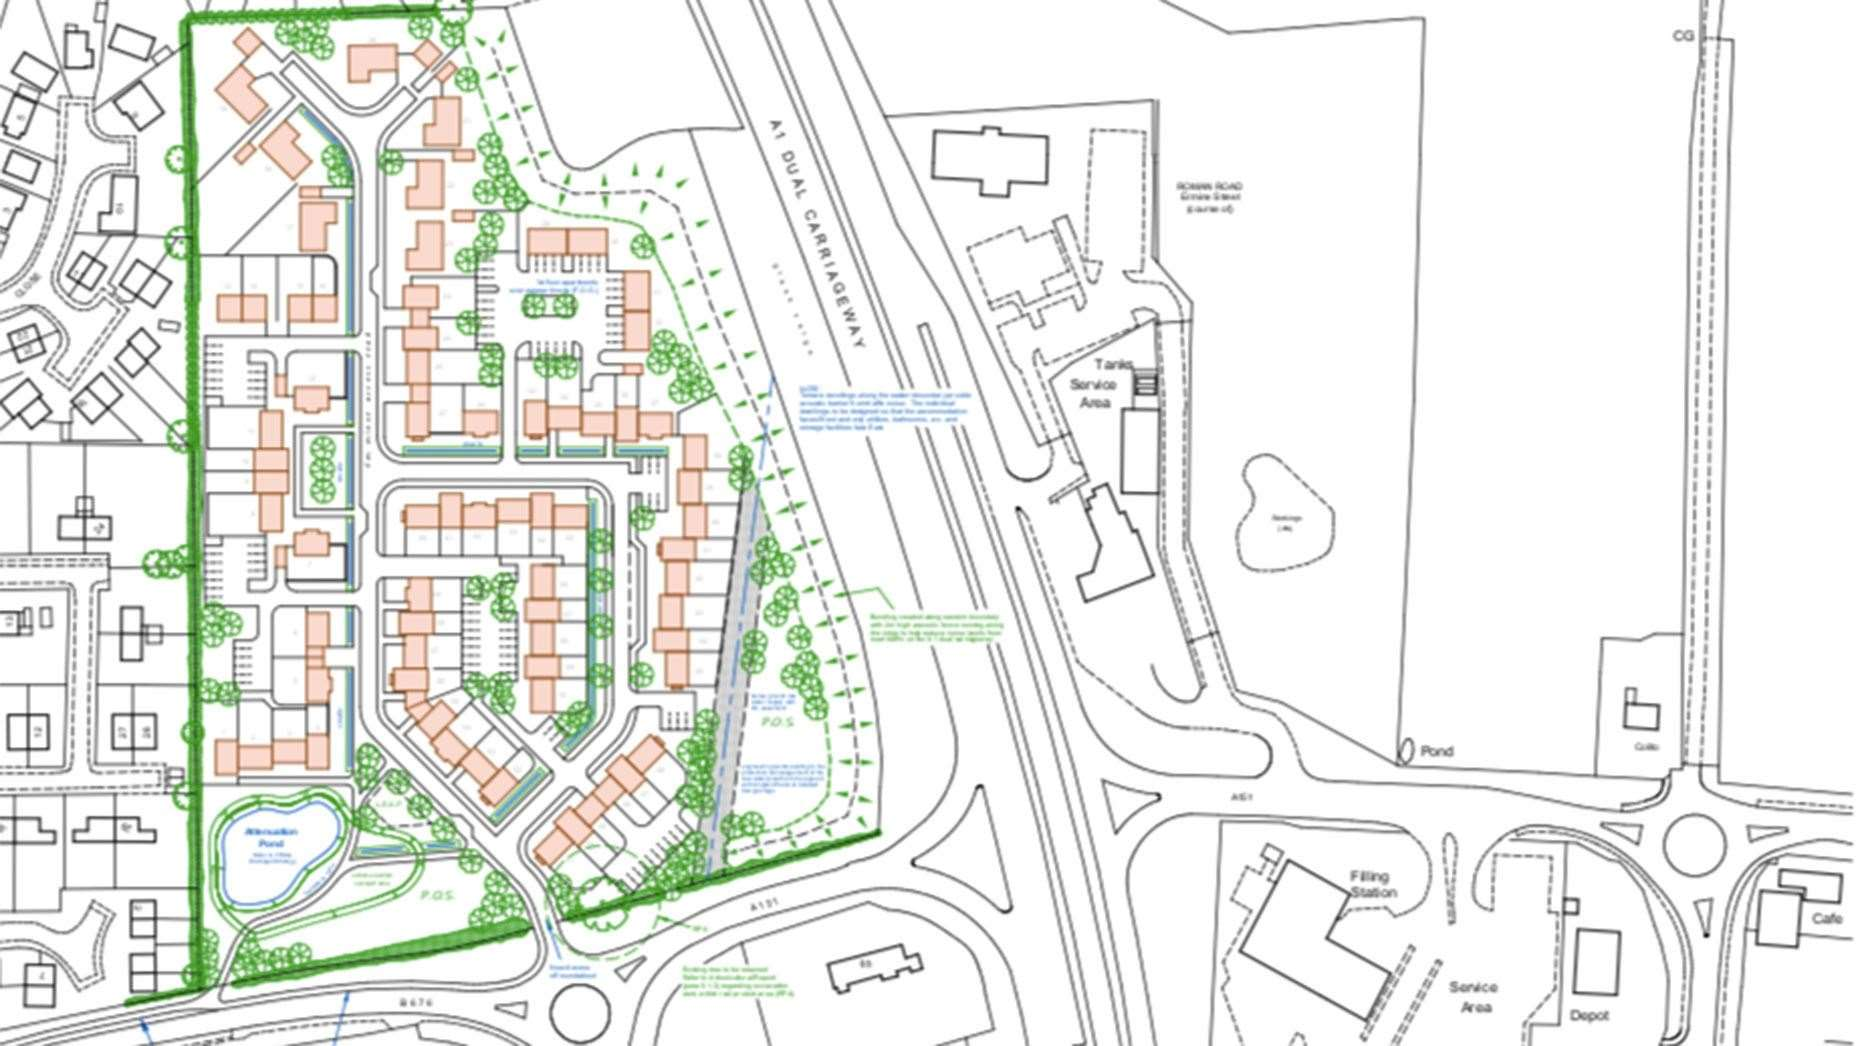 The proposed layout of the development at Colsterworth (16477123)